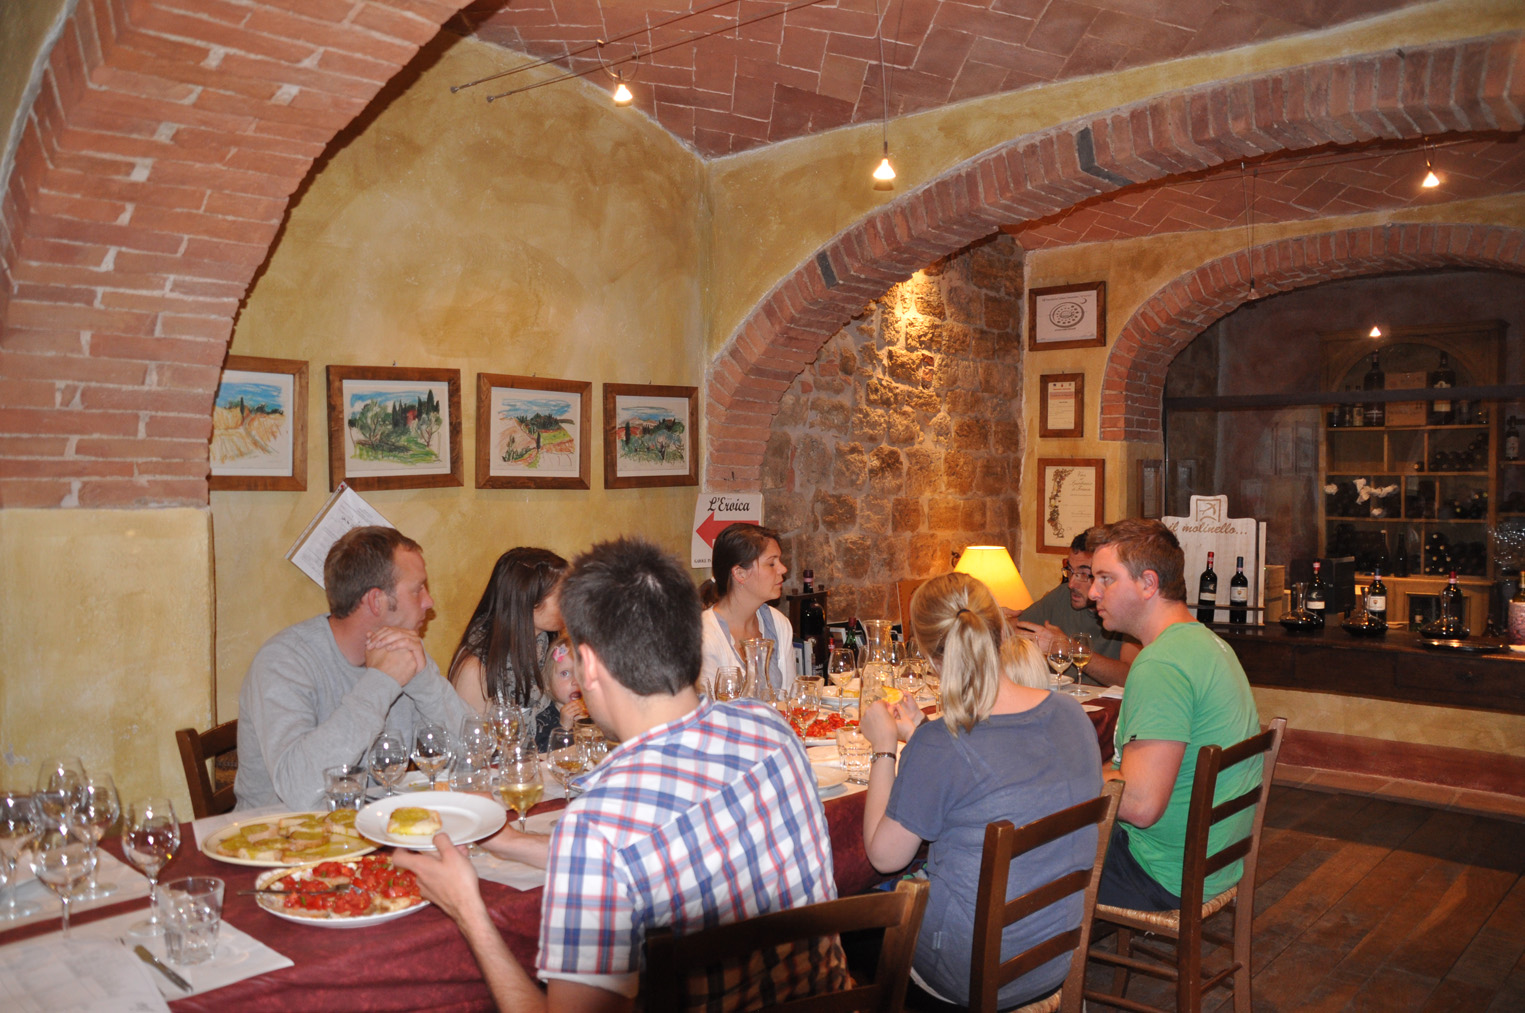 Wine tasting course near Siena